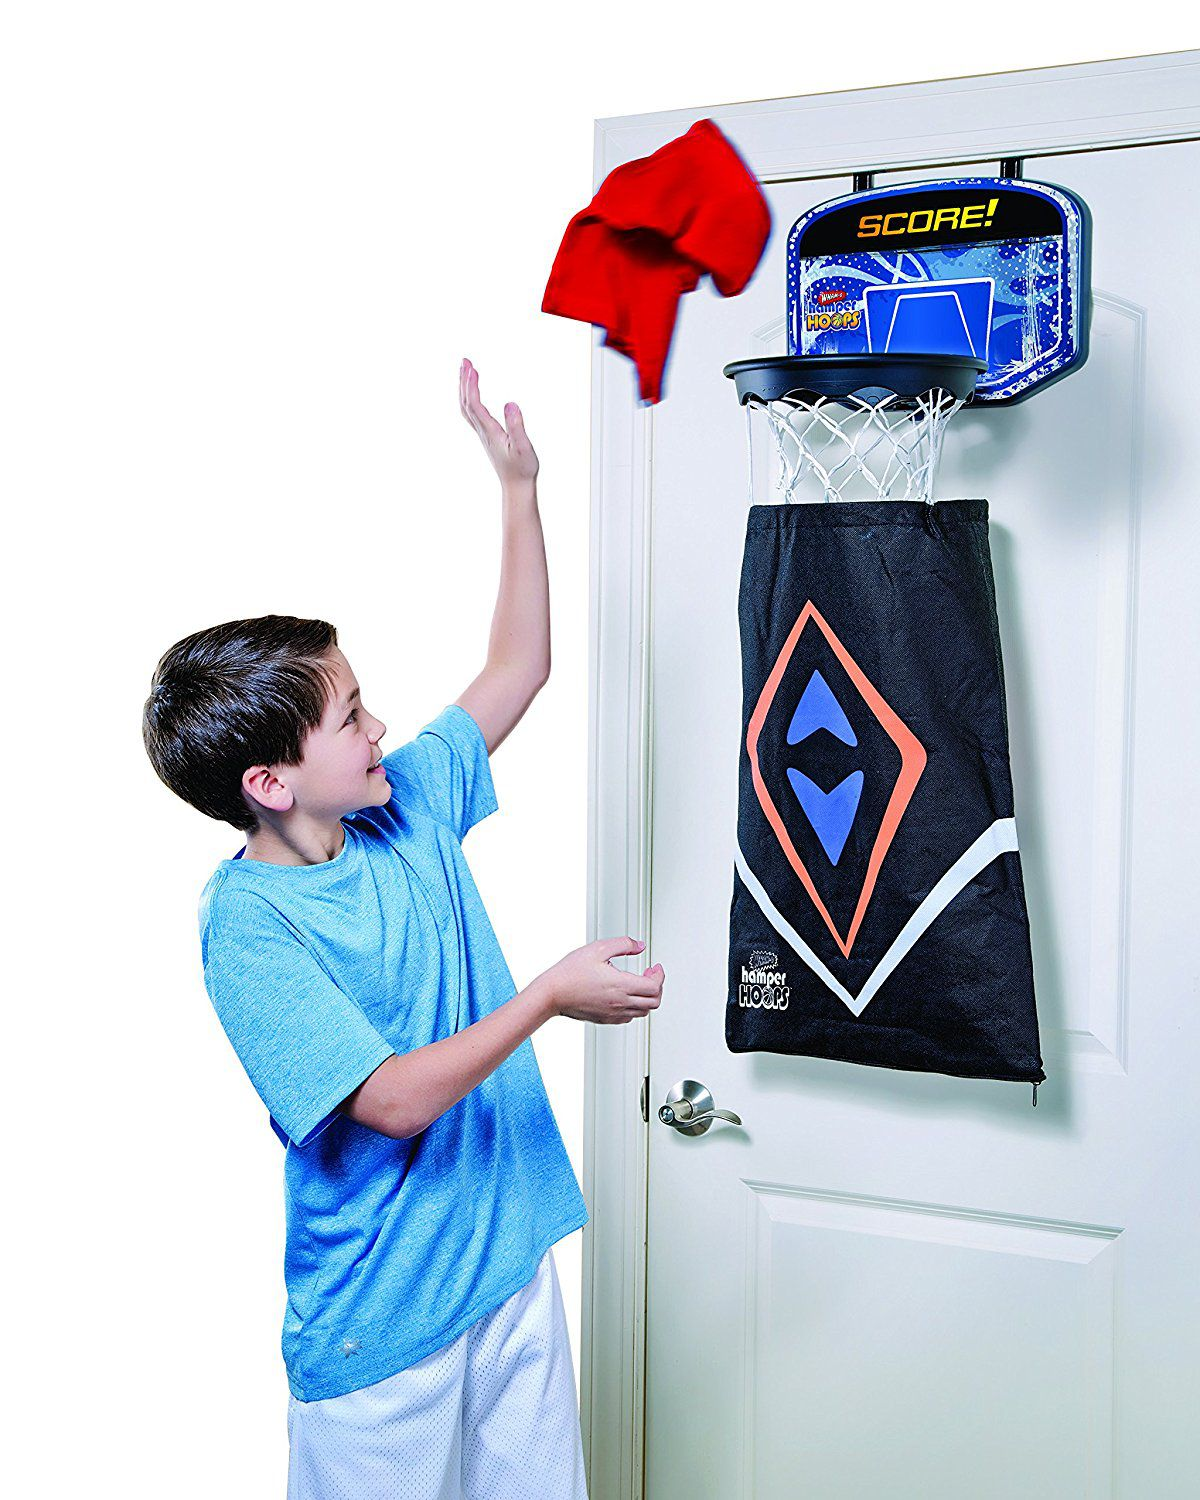 Buy the best playtime gifts online at affordable rates